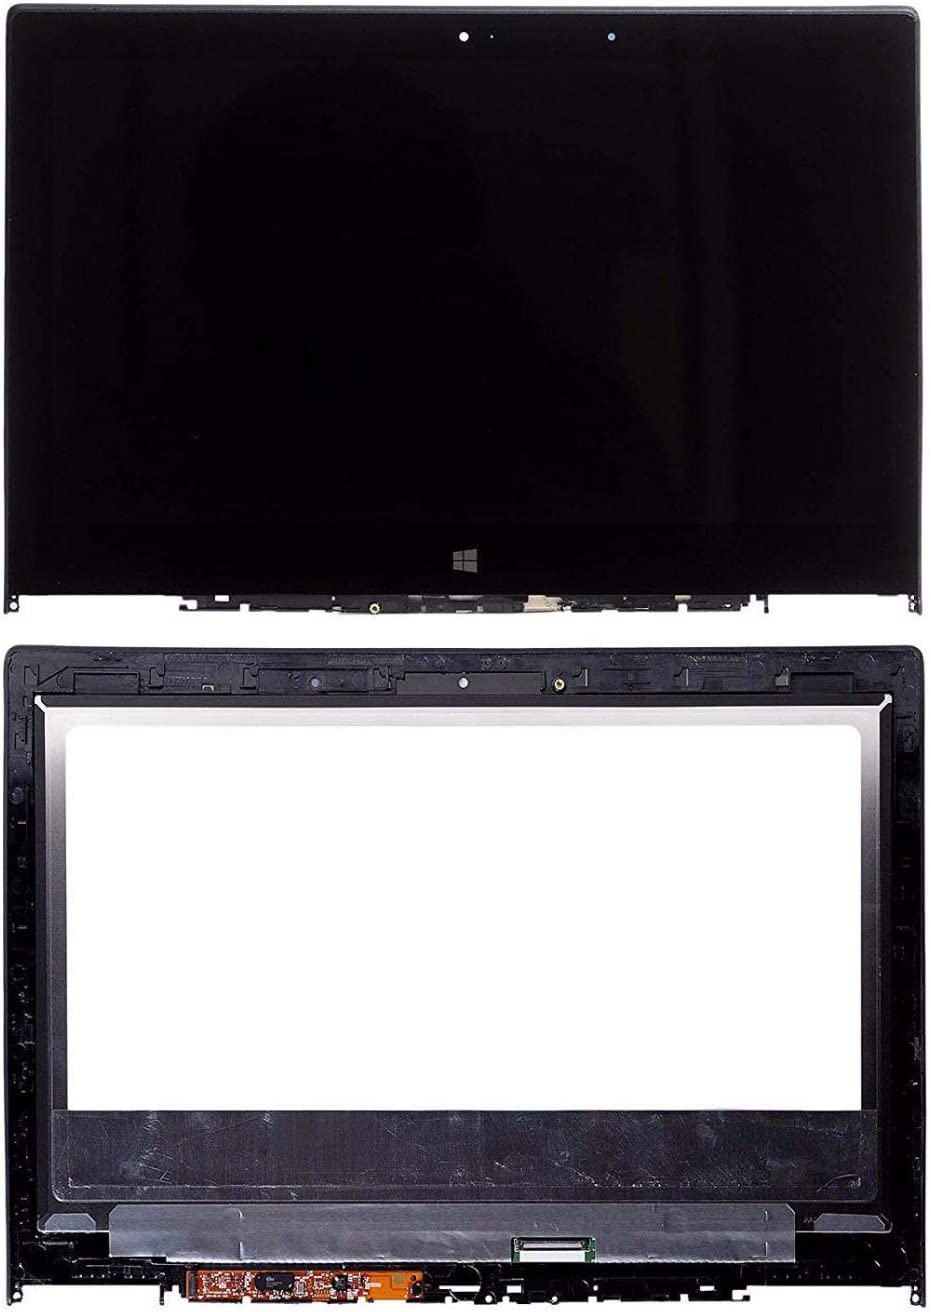 for Lenovo IdeaPad Yoga 2 Pro 13 20266 LTN133YL02-L01 Full LCD Display Panel Touch Screen Glass Monitor Digitizer Assembly with Frame